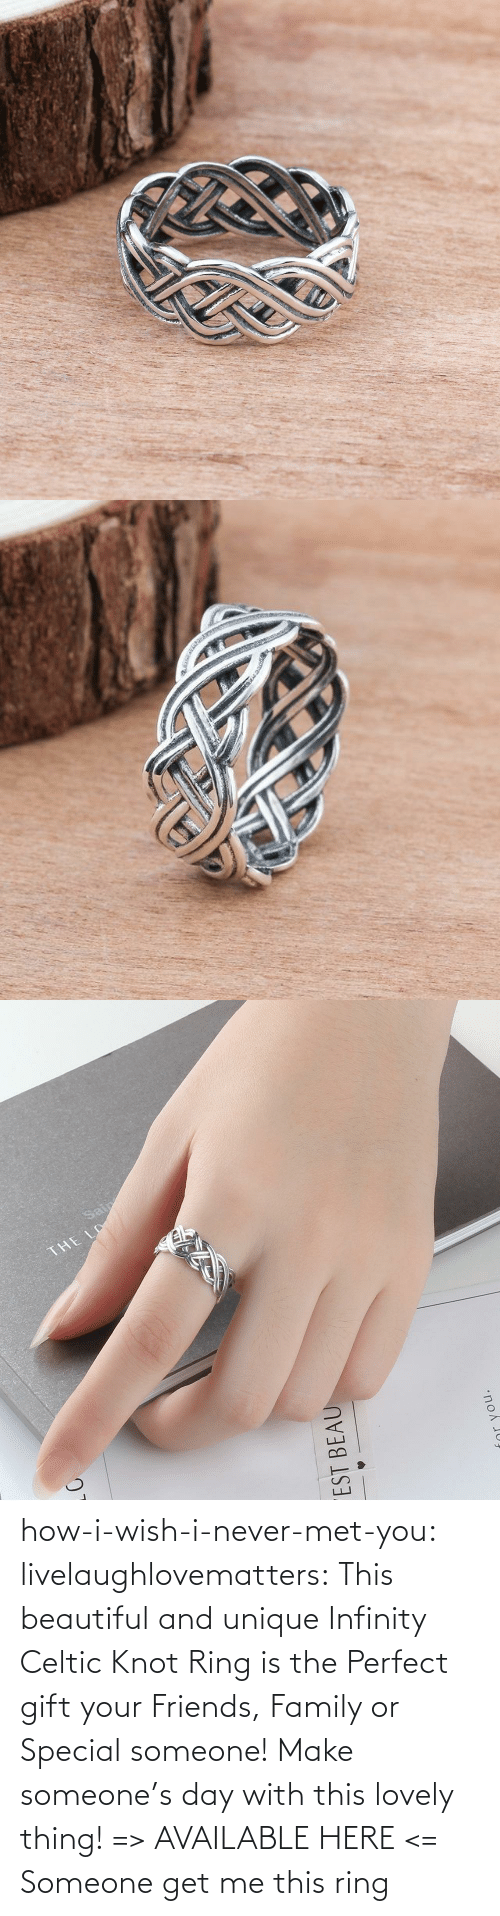 Met: how-i-wish-i-never-met-you: livelaughlovematters:  This beautiful and uniqueInfinity Celtic Knot Ring is the Perfect gift your Friends, Family or Special someone! Make someone's day with this lovely thing! => AVAILABLE HERE <=    Someone get me this ring